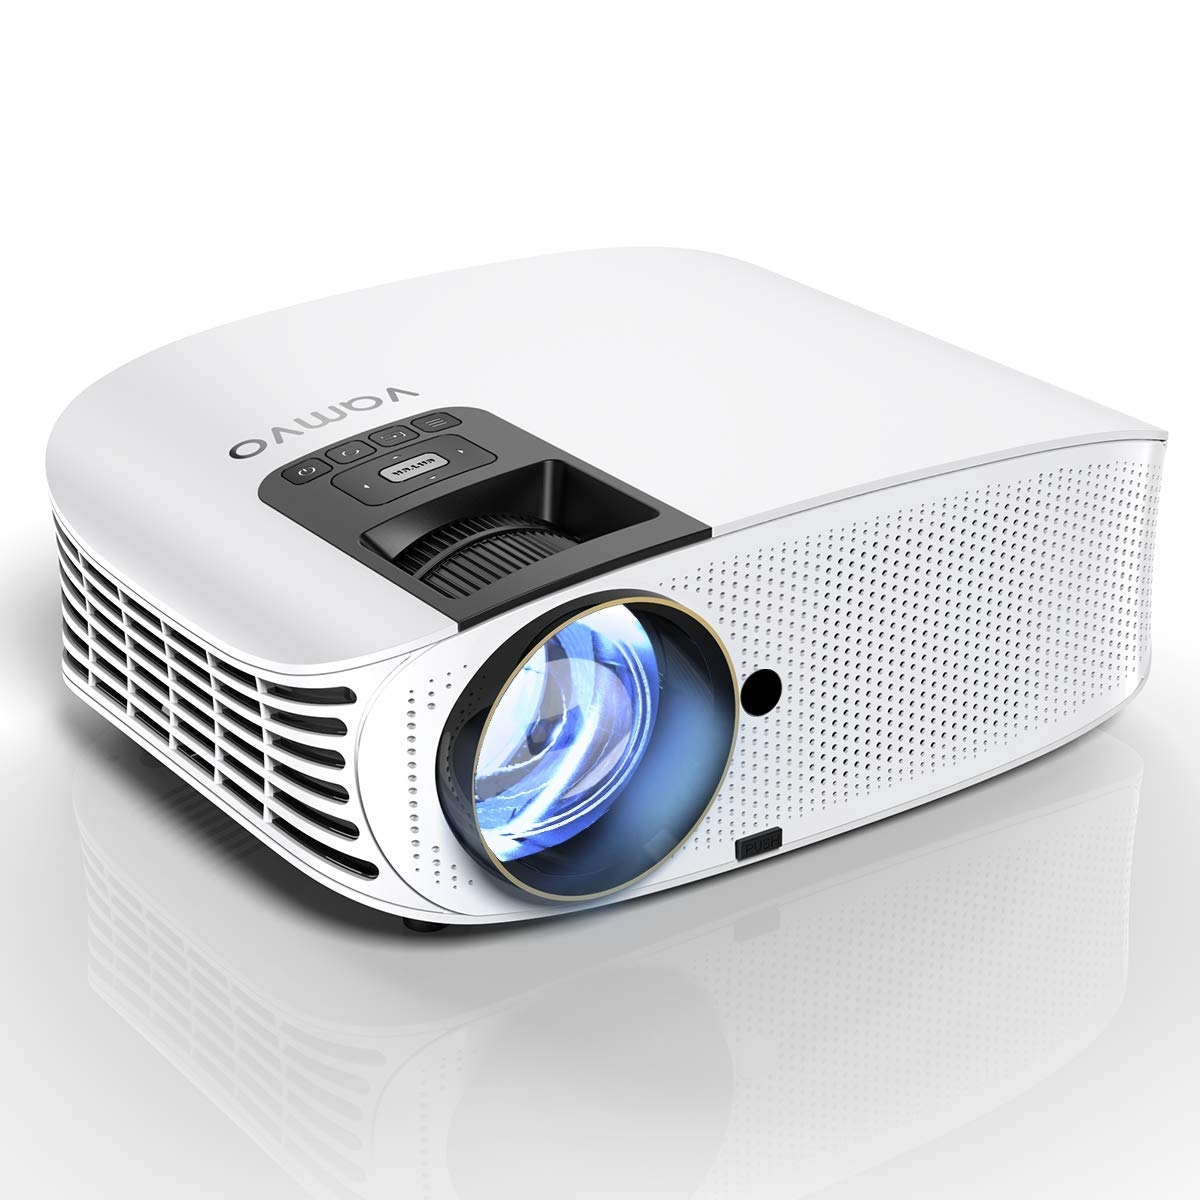 HD Projector Connect to Smartphone, Vamvo Movie Projector 200'' LCD Home Theater Video Projector Support 1080P HDMI VGA AV USB MicroSD for Home Entertainment, Party and Game L3600W